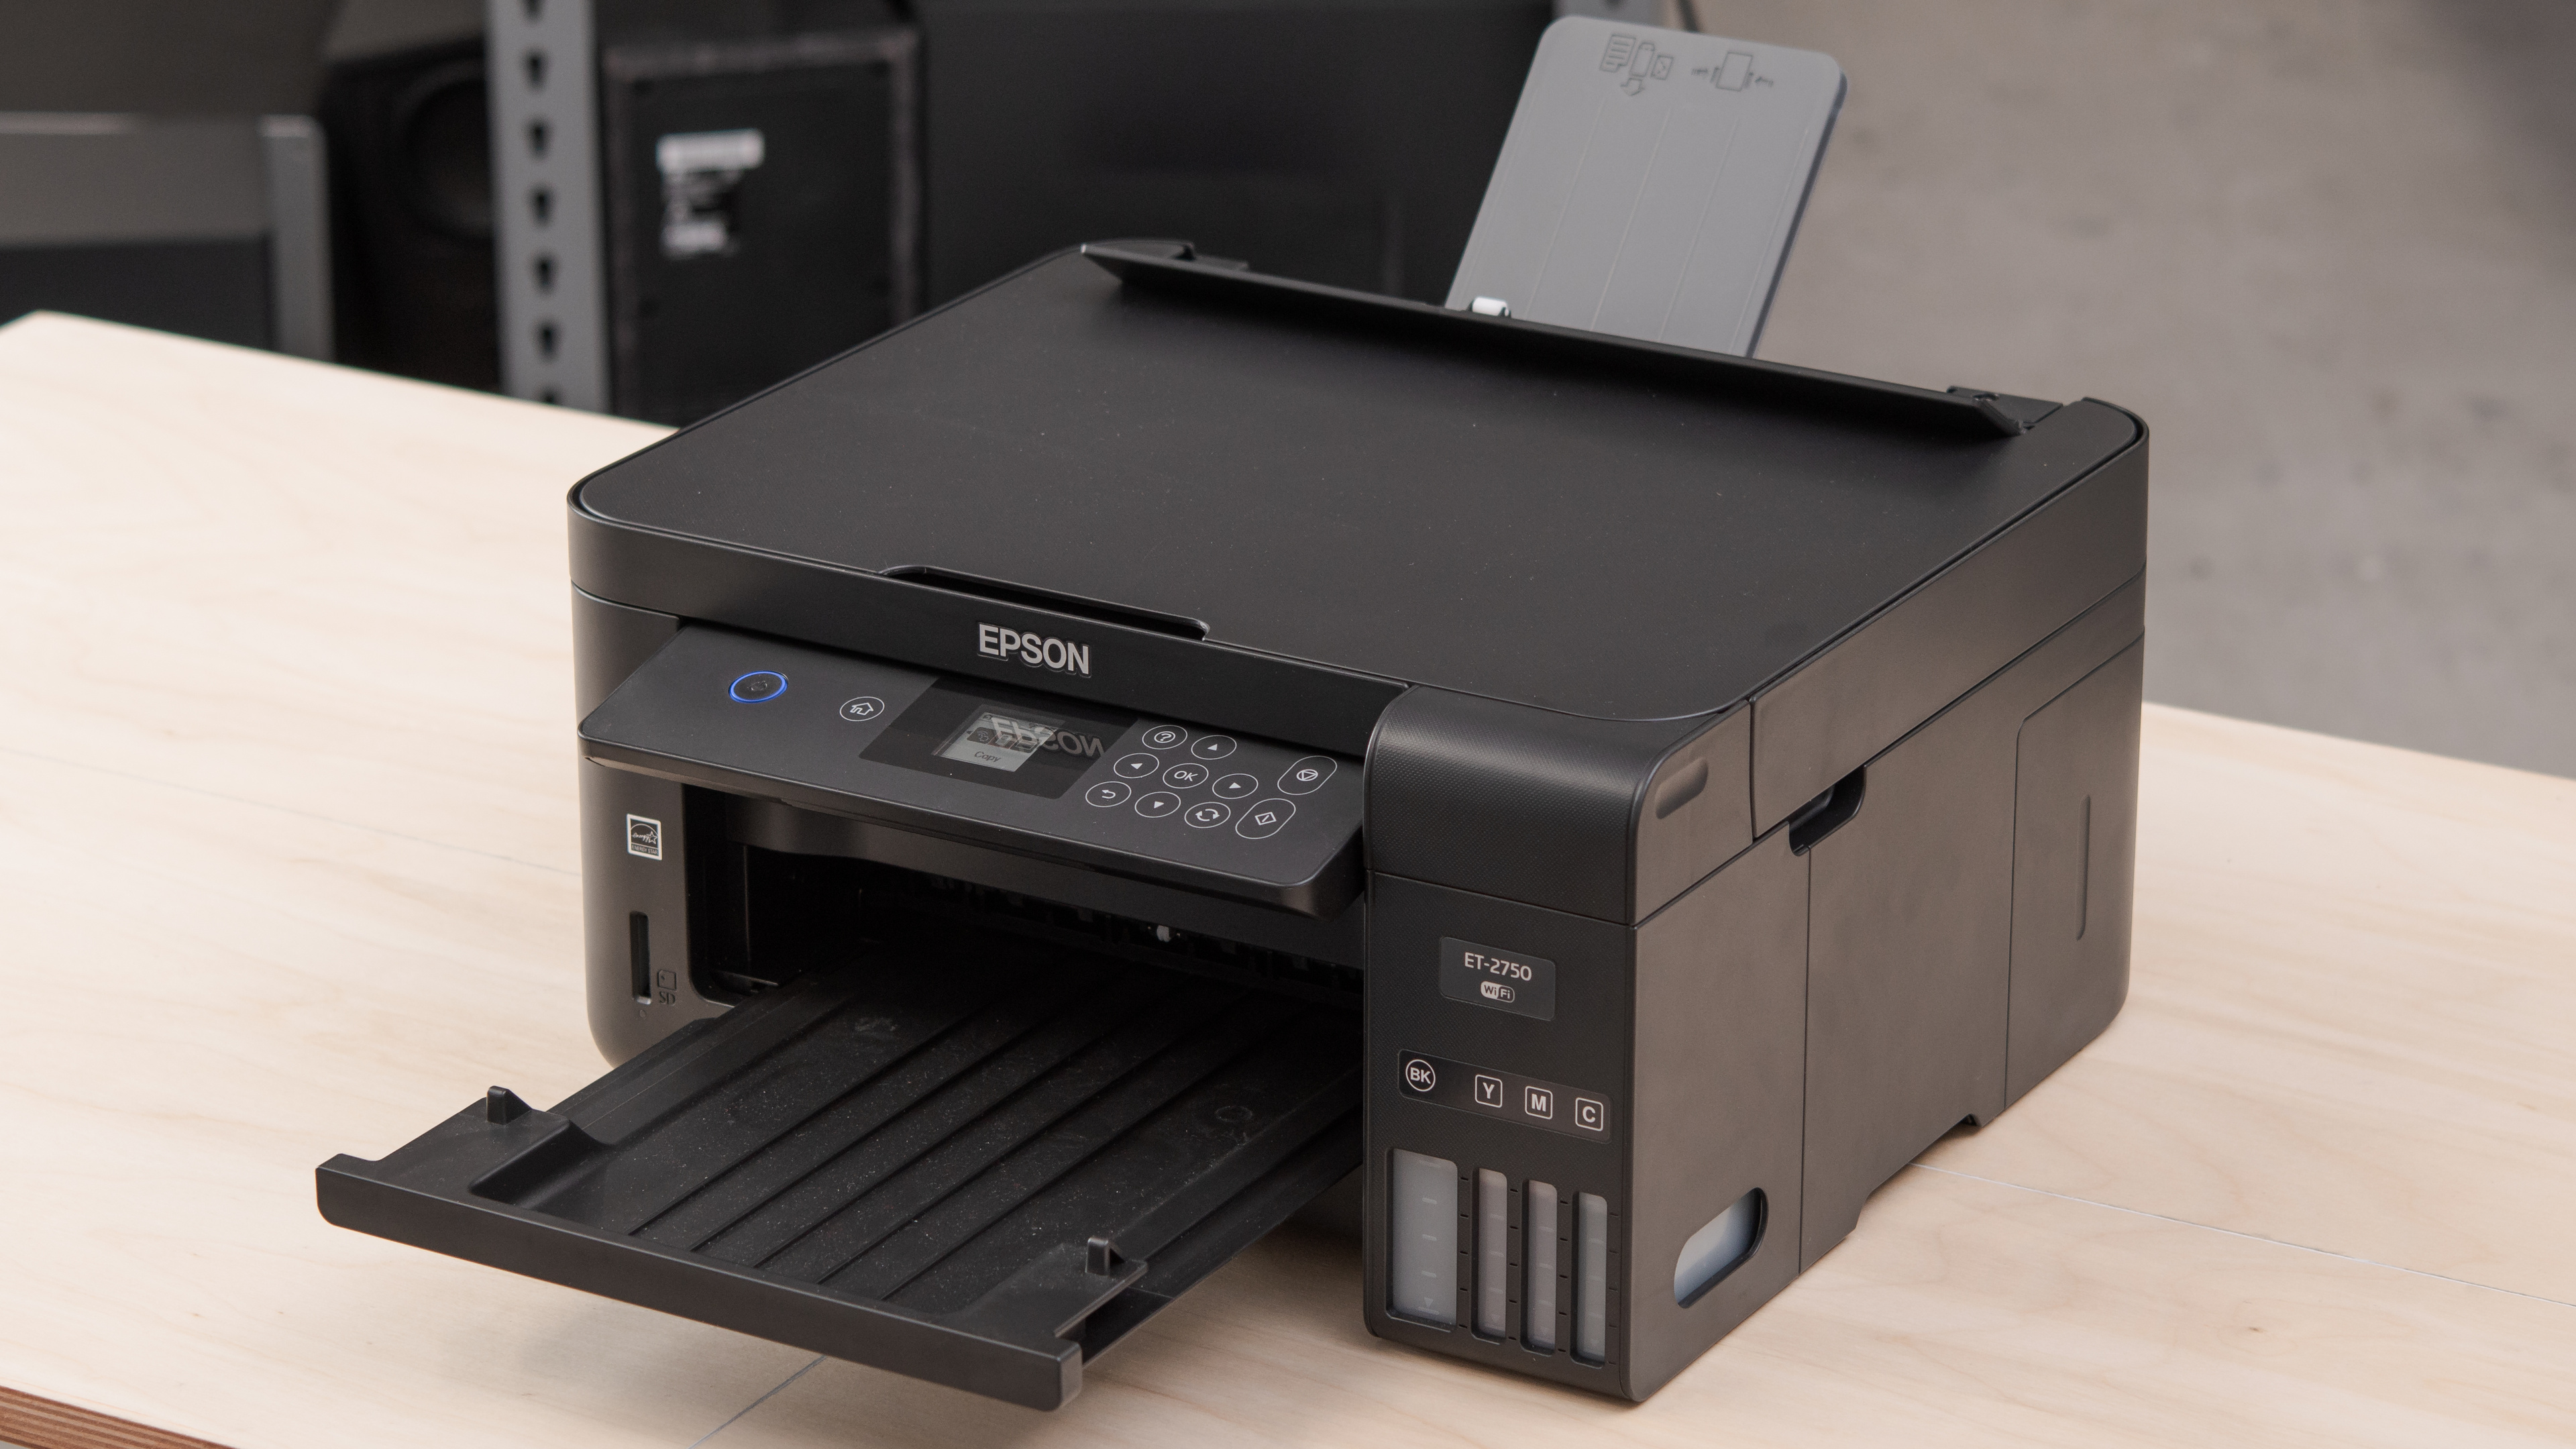 Epson Expression Et 2750 Review Rtings Com